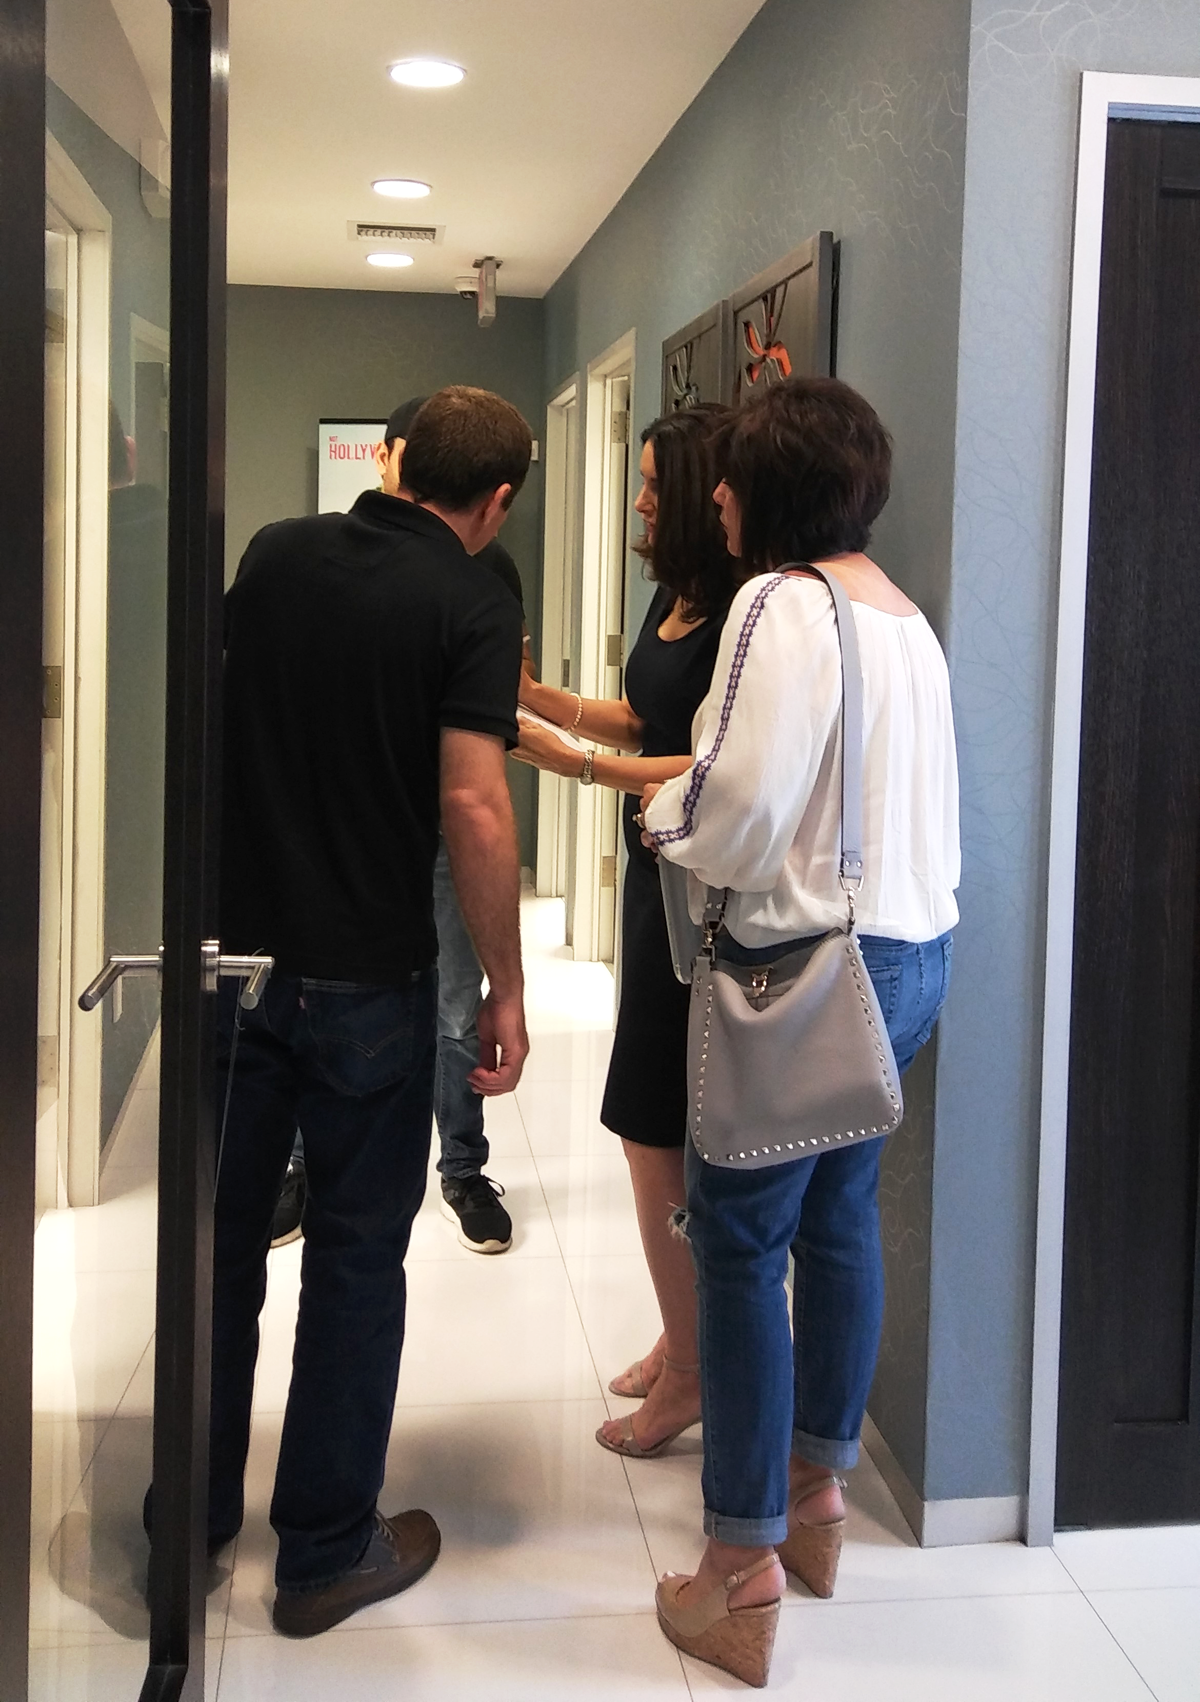 Redmonkie® staff with provider and talent quick meeting before starting filming one of the scenes on the new promotional video for Sunset Dermatology.